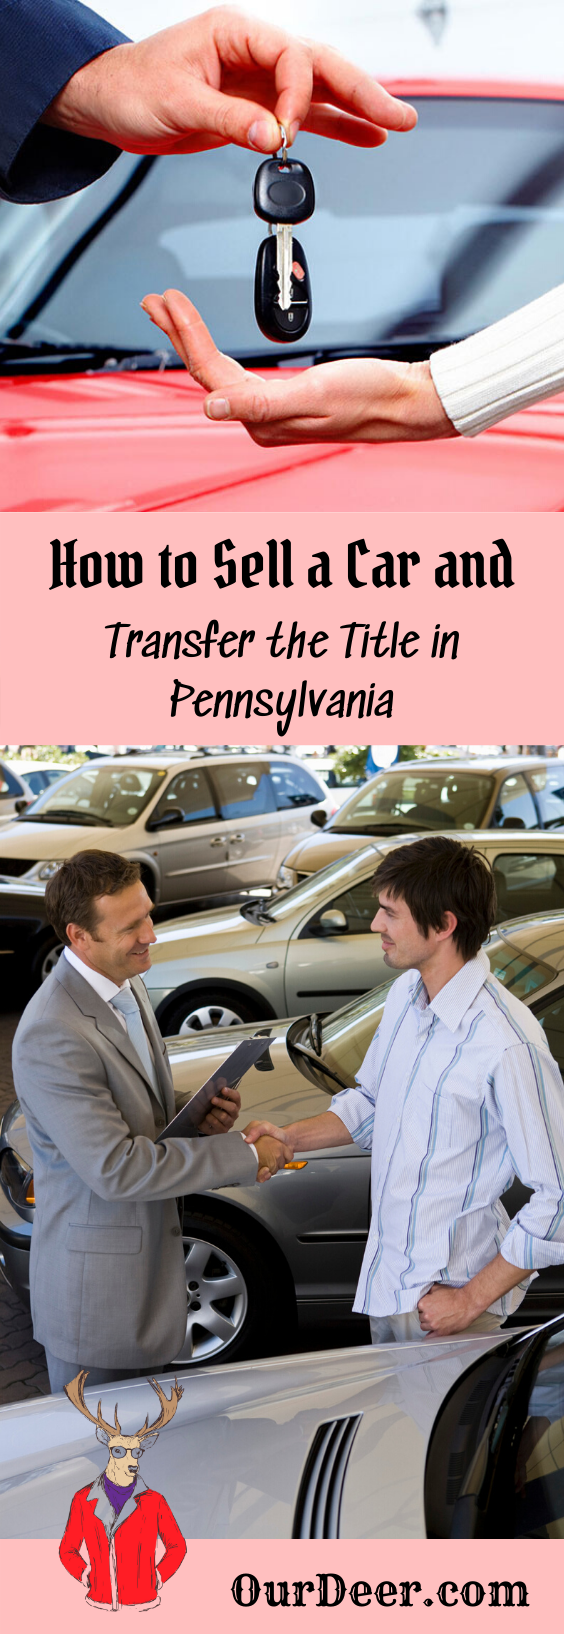 How To Sell A Car Transfer The Title In Pennsylvania Our Deer Sell Car Things To Sell Transfer